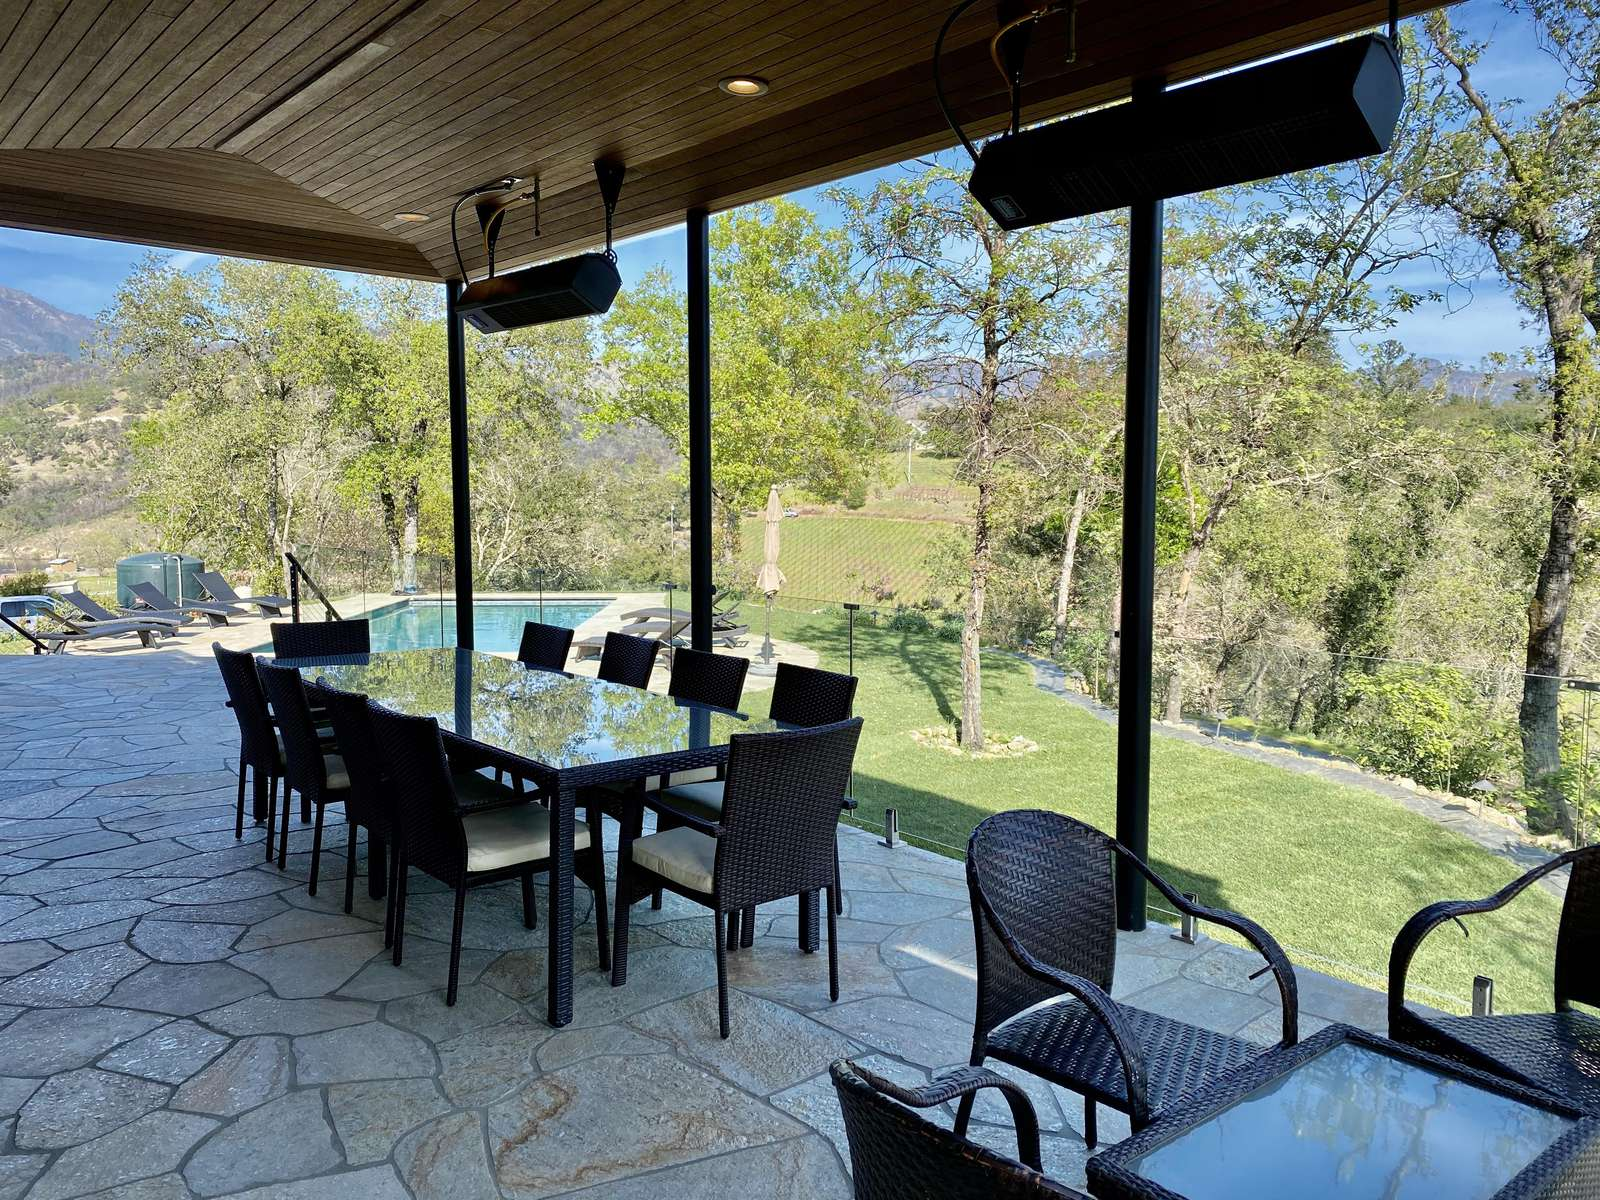 Outdoor patio and dining area overlooking pool and grassy areas